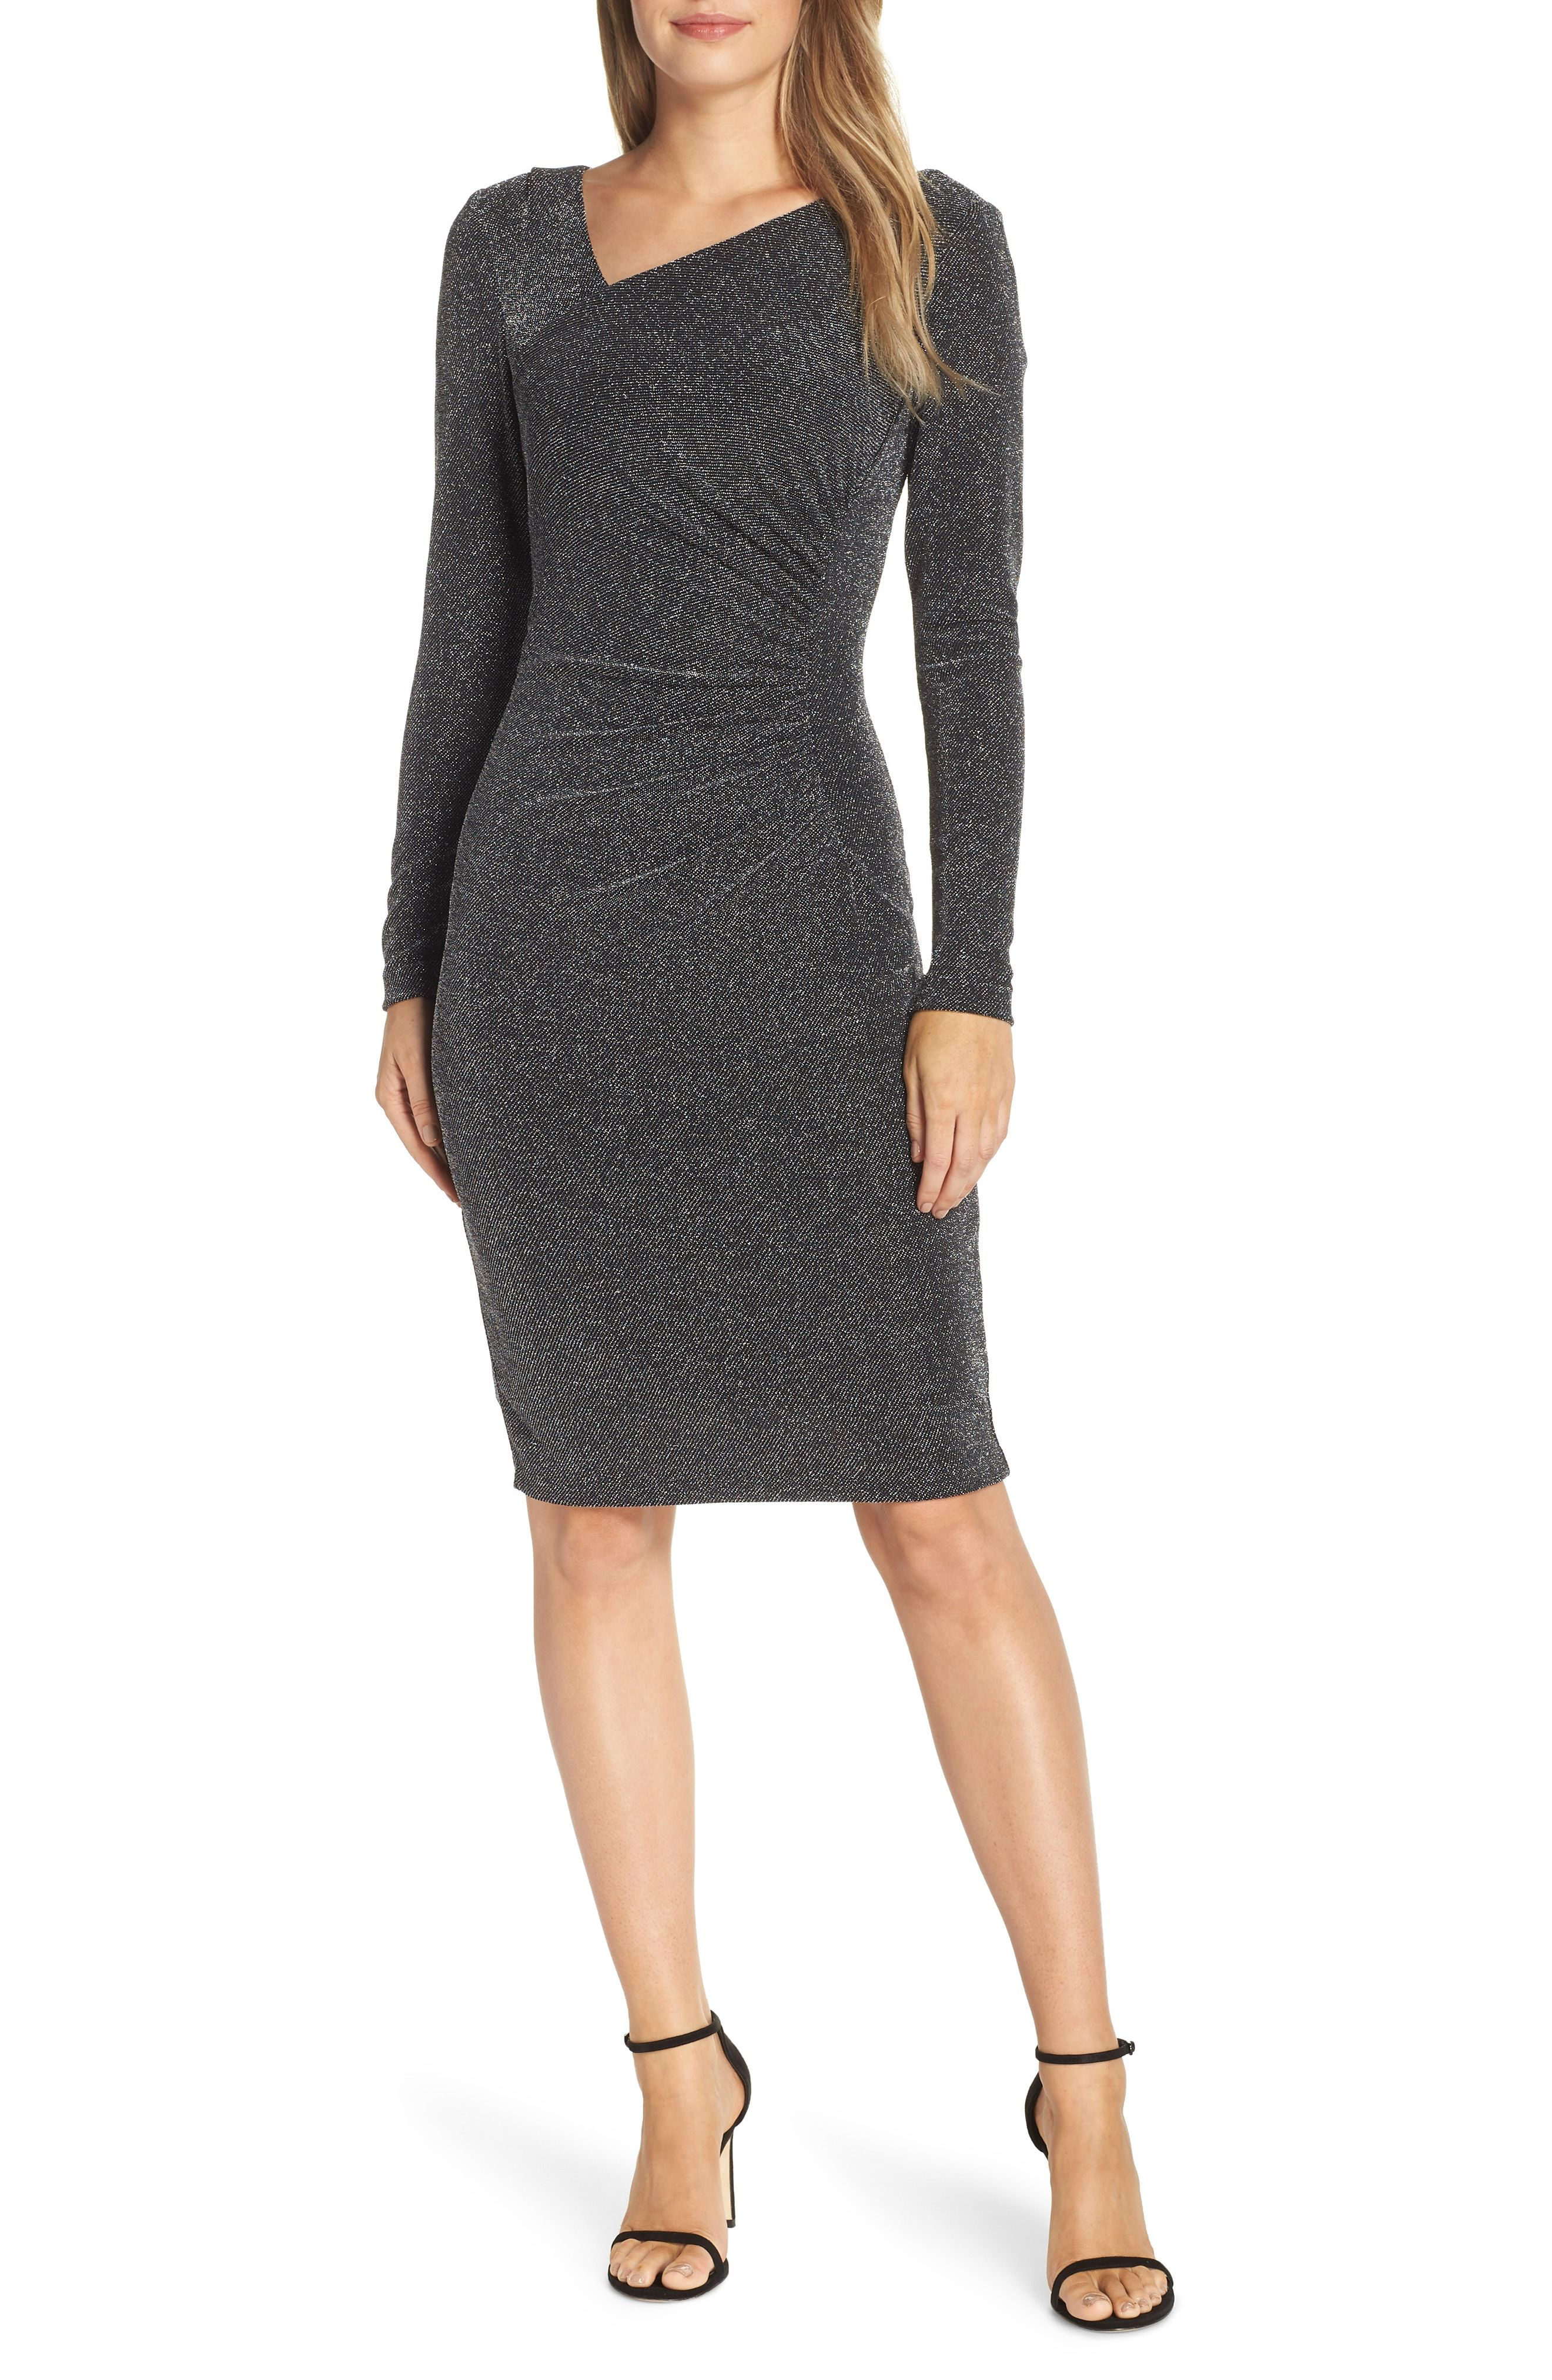 Vince Camuto Asymmetrical V Neck Metallic Cocktail Sheath Available At Nordstrom Cocktail Dresses With Sleeves Trendy Cocktail Dresses V Neck Cocktail Dress [ 4048 x 2640 Pixel ]